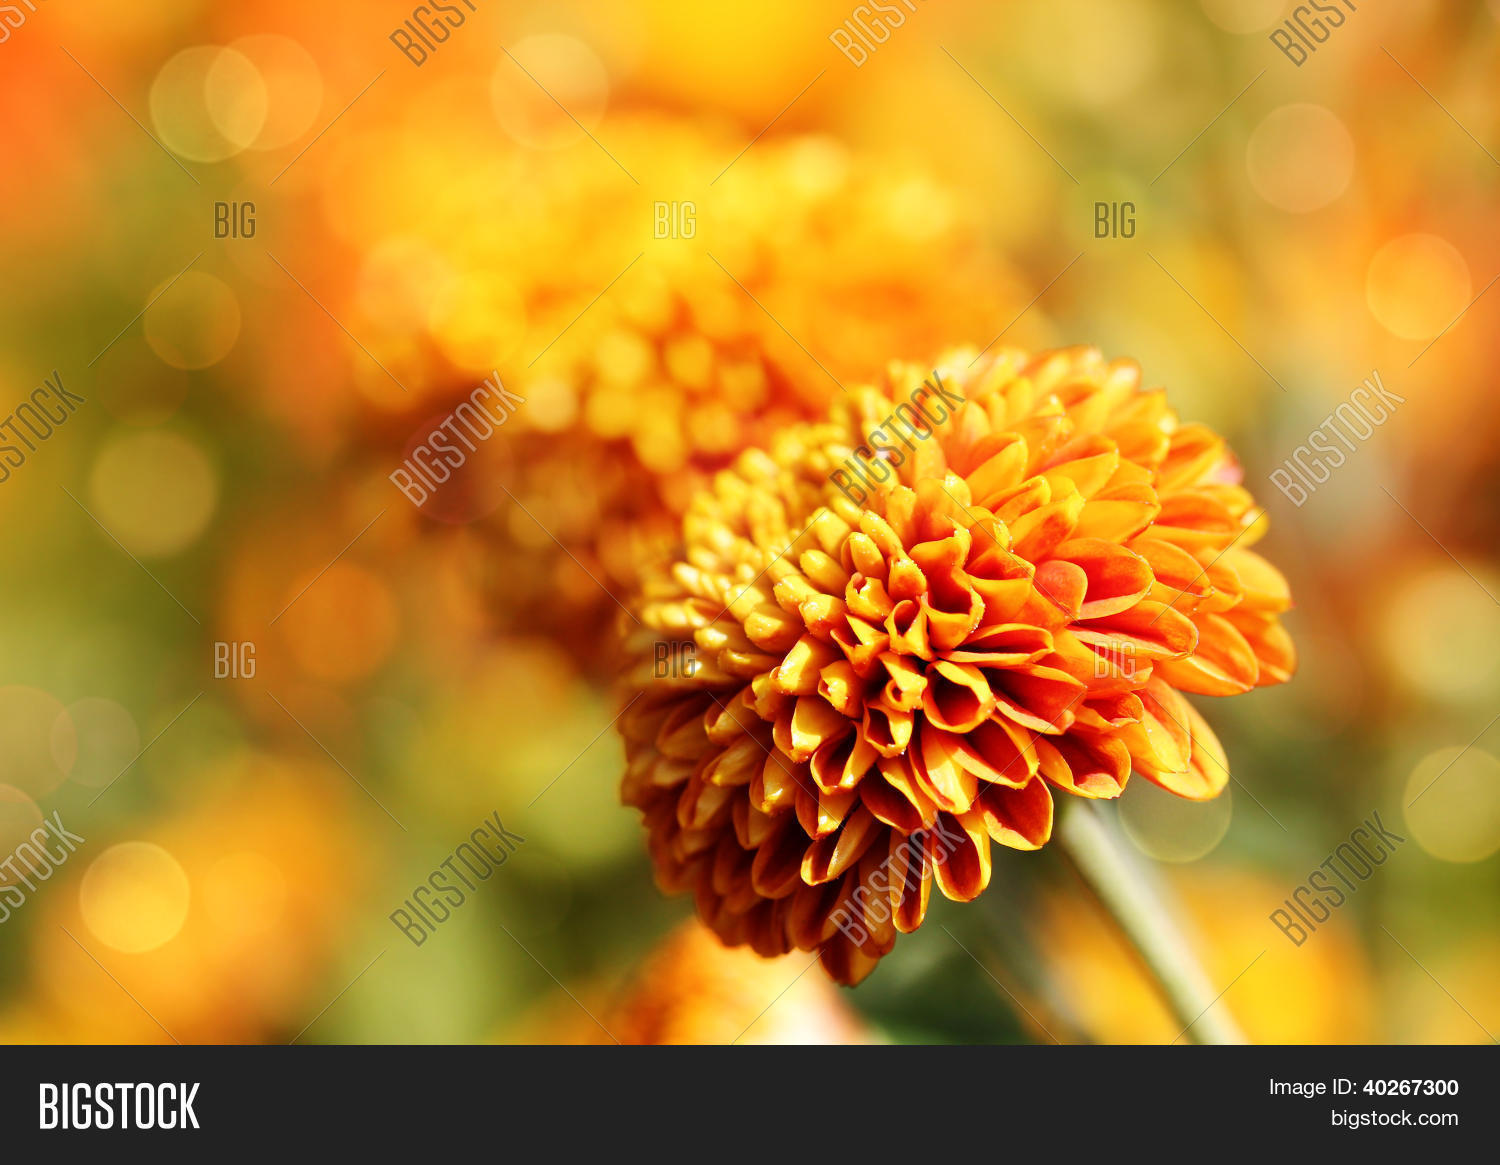 Beautiful Orange Image Photo Free Trial Bigstock